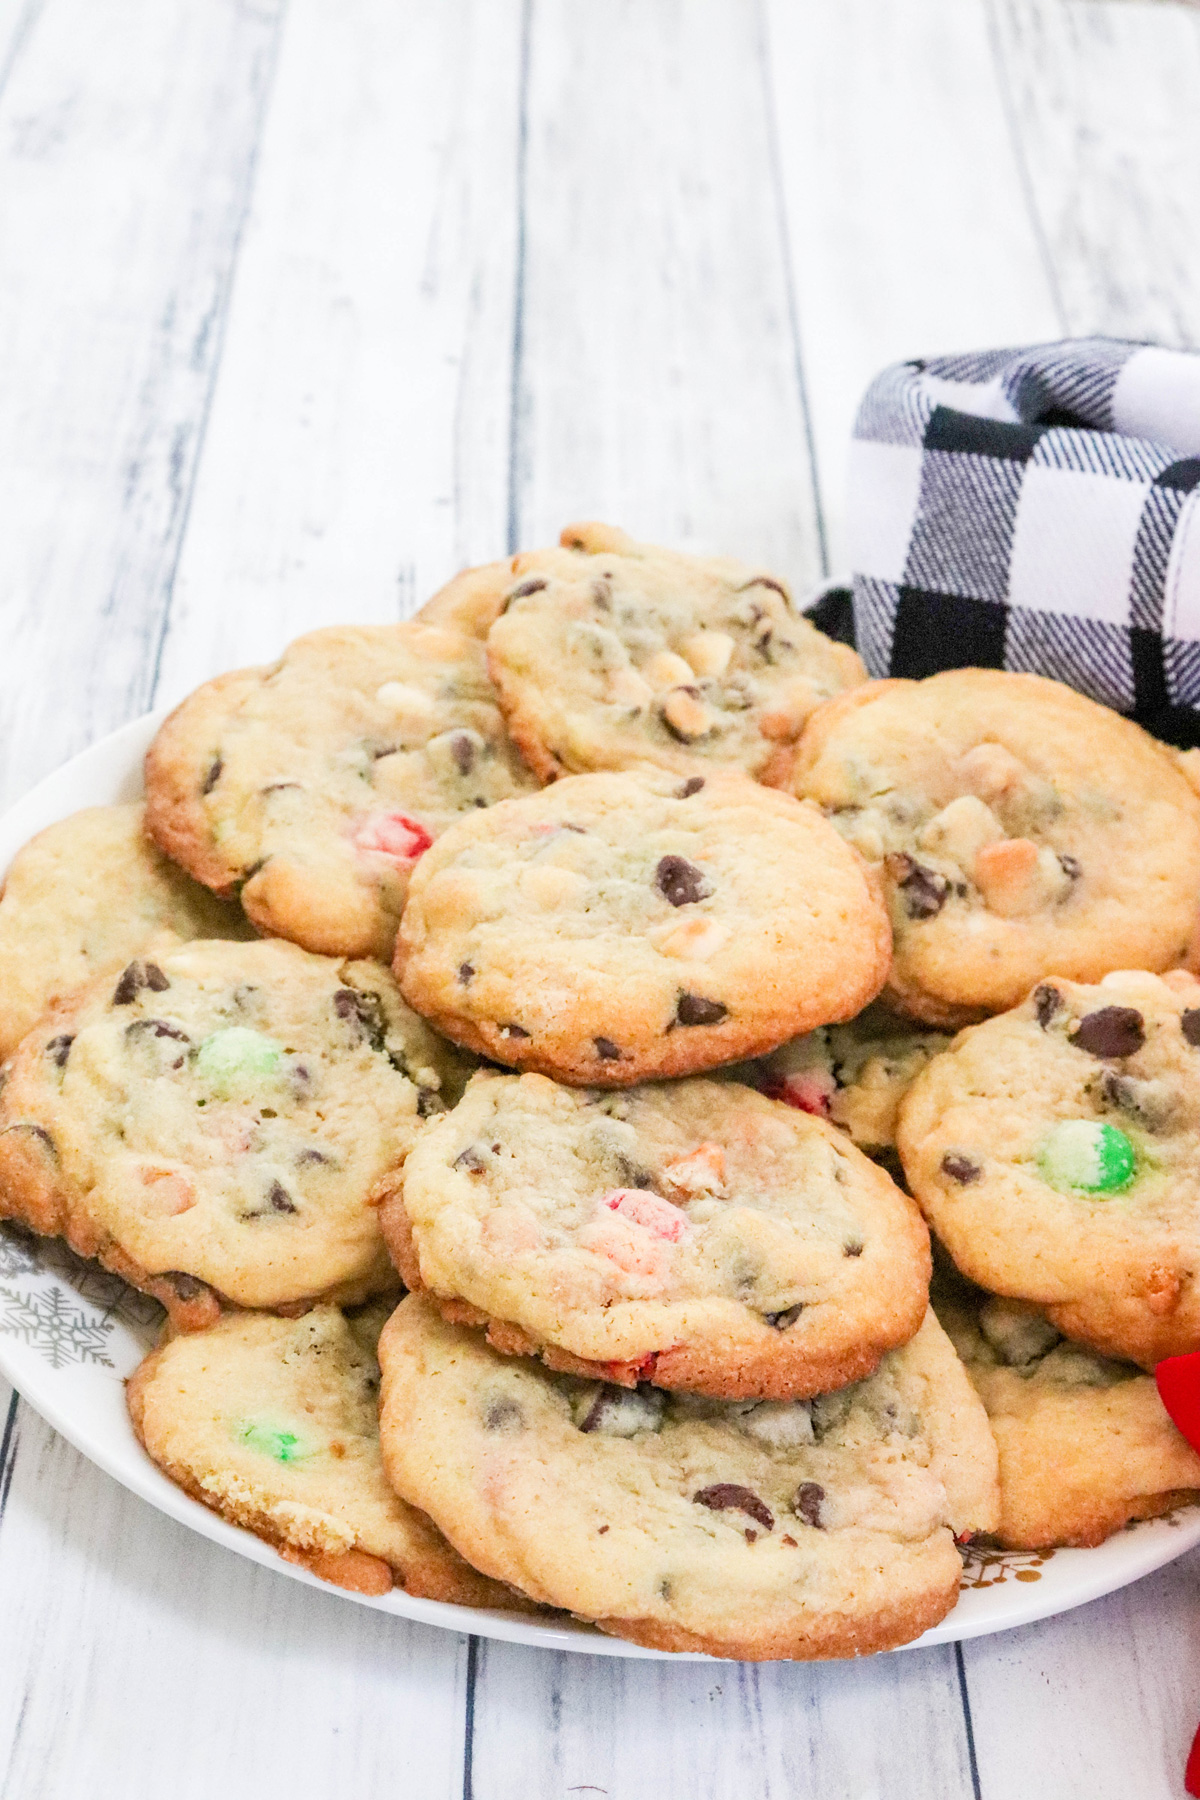 Chippity Chip Cookies